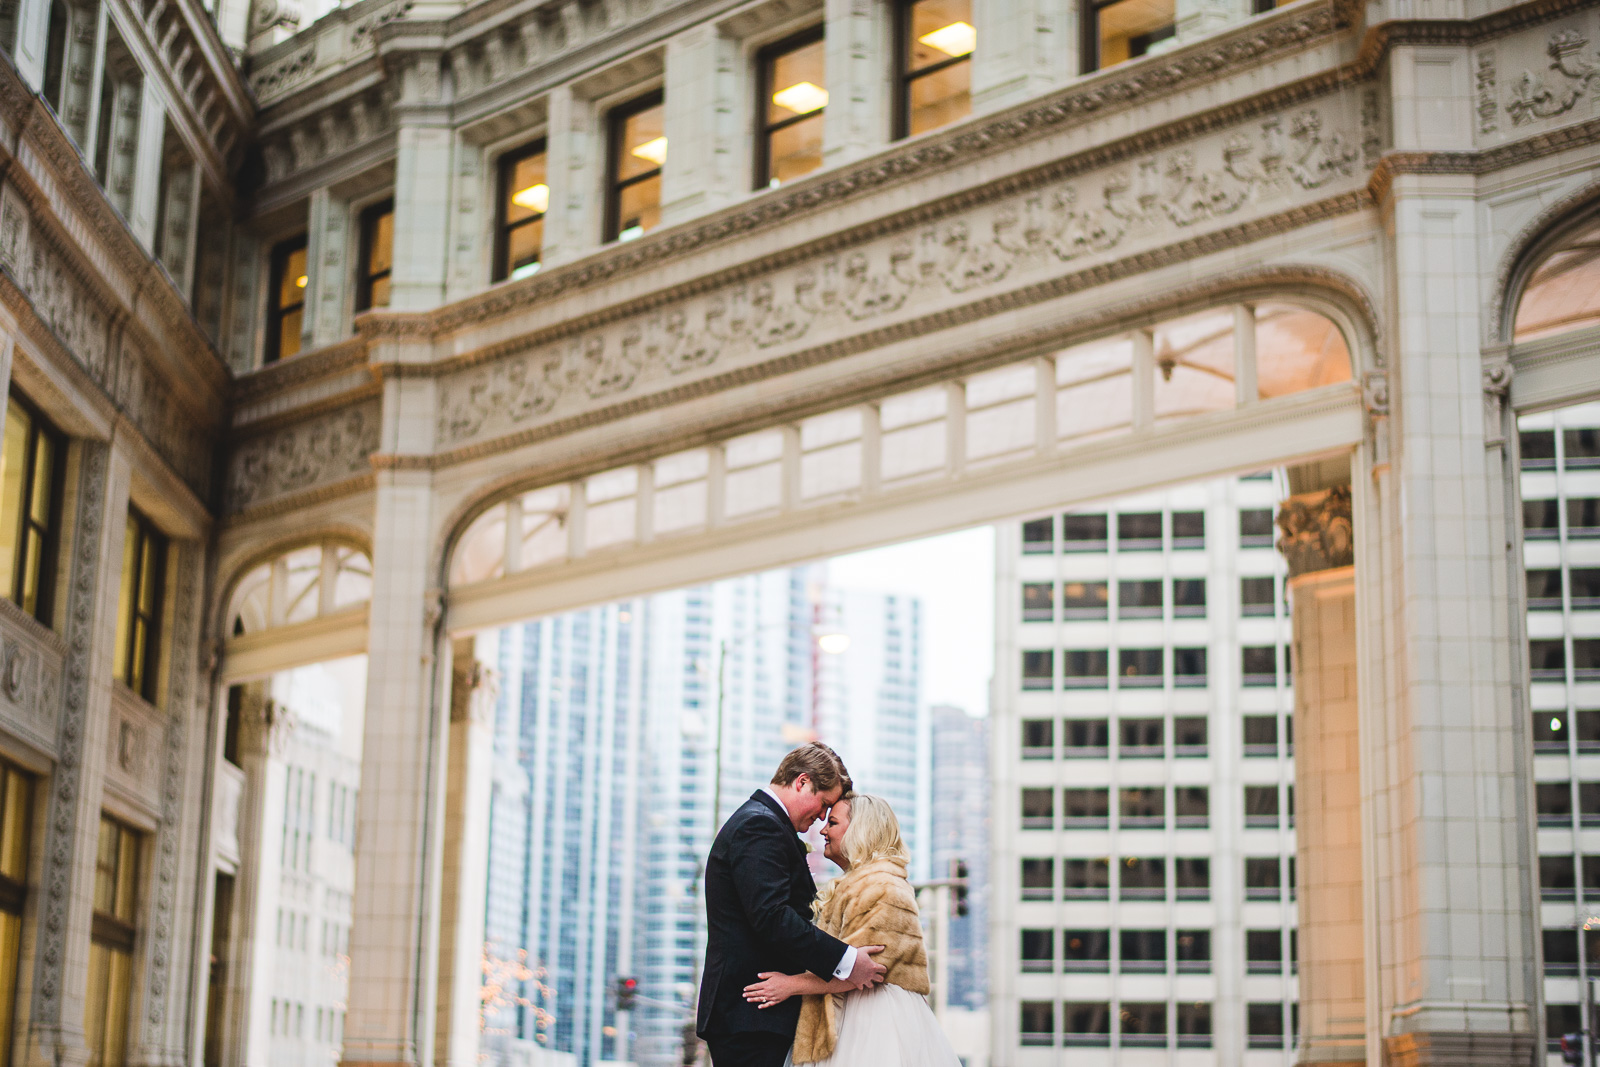 6 chicago wedding photographer best portraits during weddings review 1 - 2018 in Review // My Favorite Chicago Wedding Photography Portraits